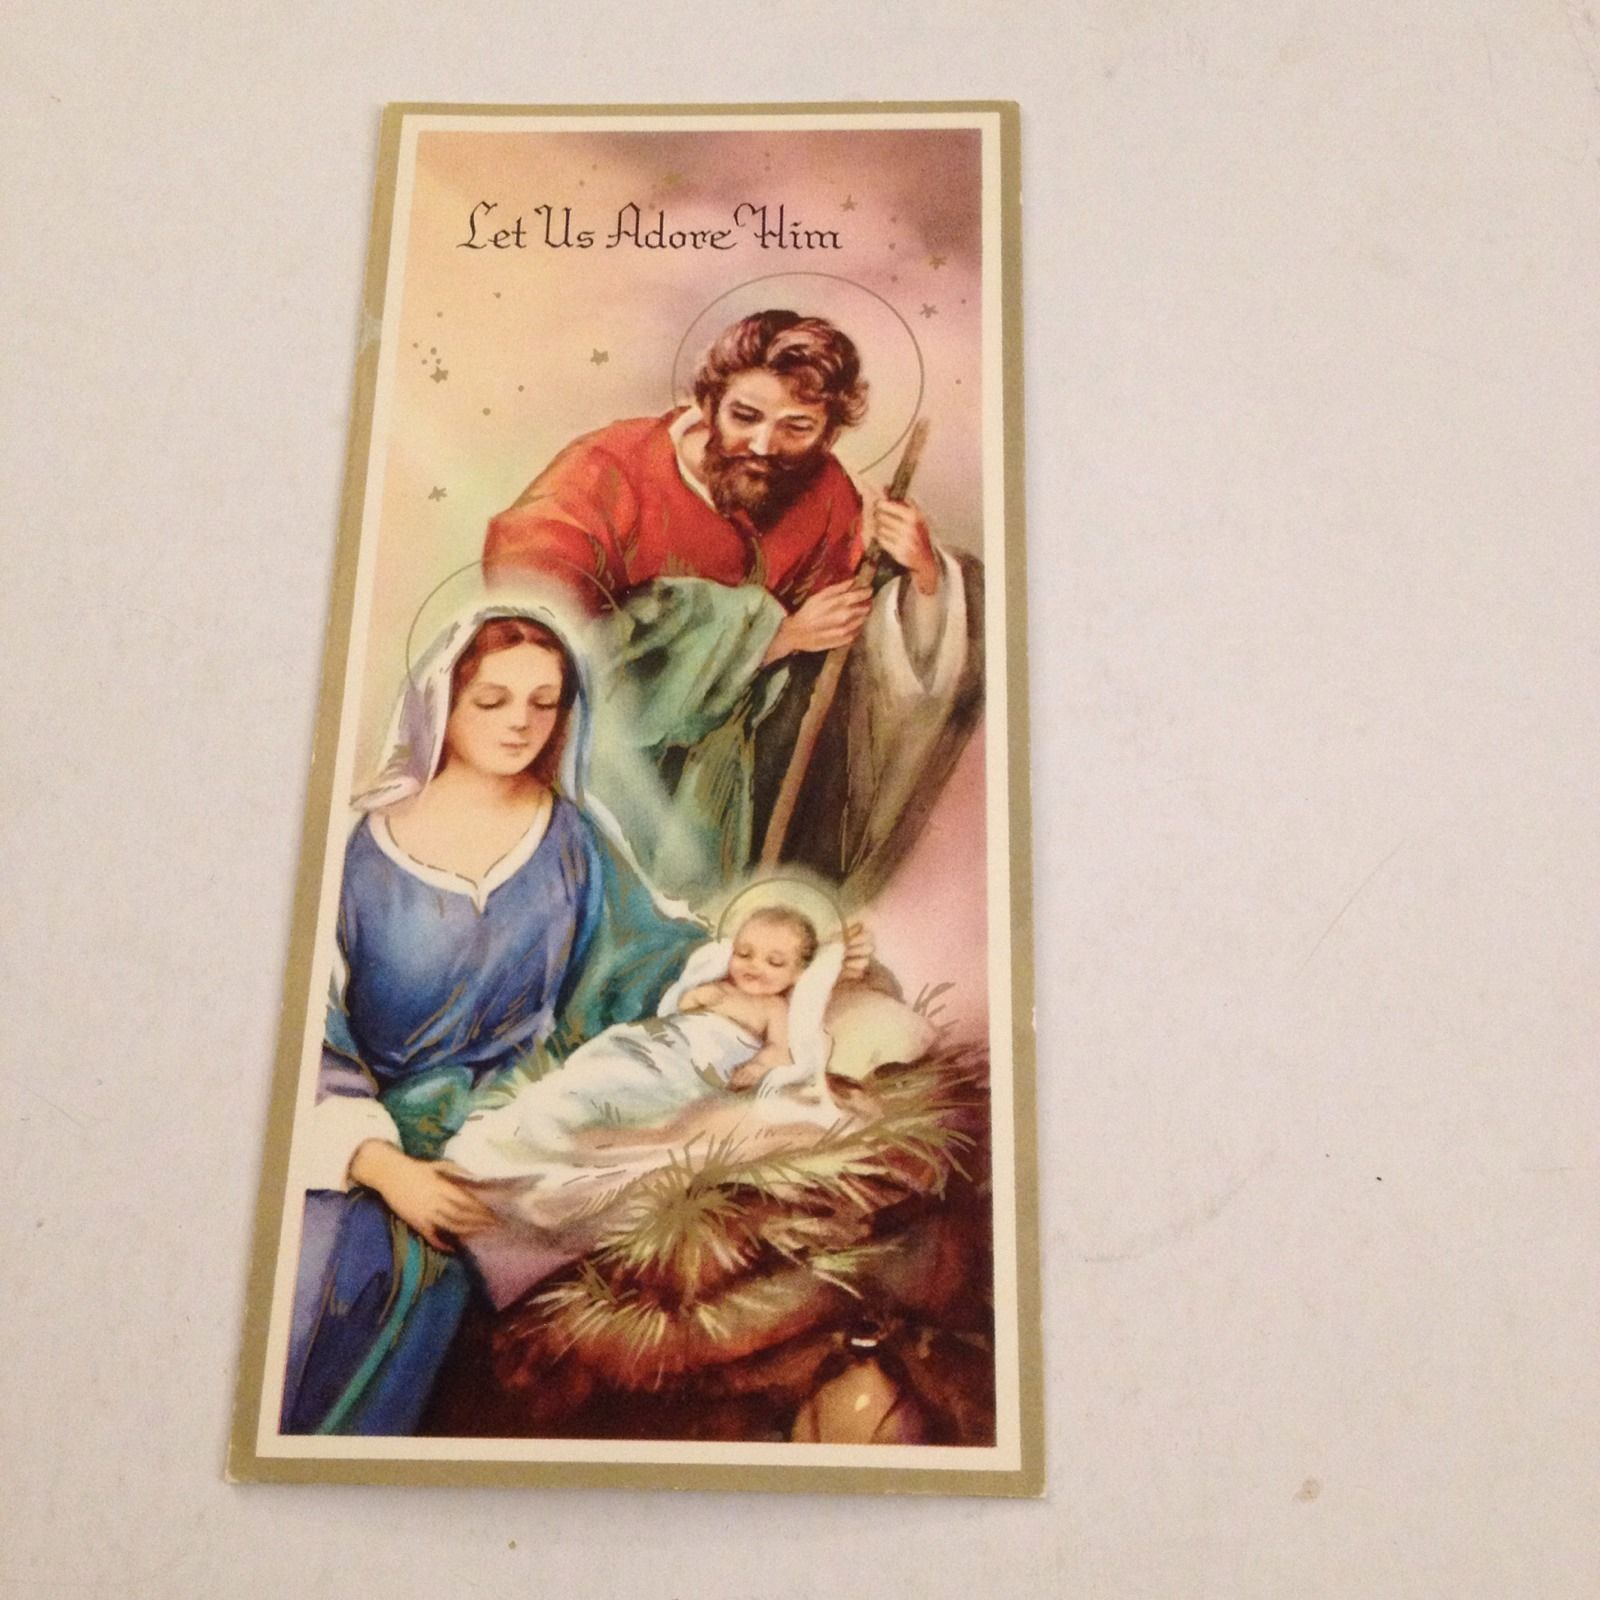 VINTAGE Greeting Card Christmas Adore Him Baby Jesus Mary Joseph - $1.60. This is an auction for a nice card. It is signed. Winning bidder pays 2.50 for shipping and handling in the U.S. Payment needs to be made within 7 days. Please look at our other items to save on shipping costs. Any questions feel free to email. 382288725850